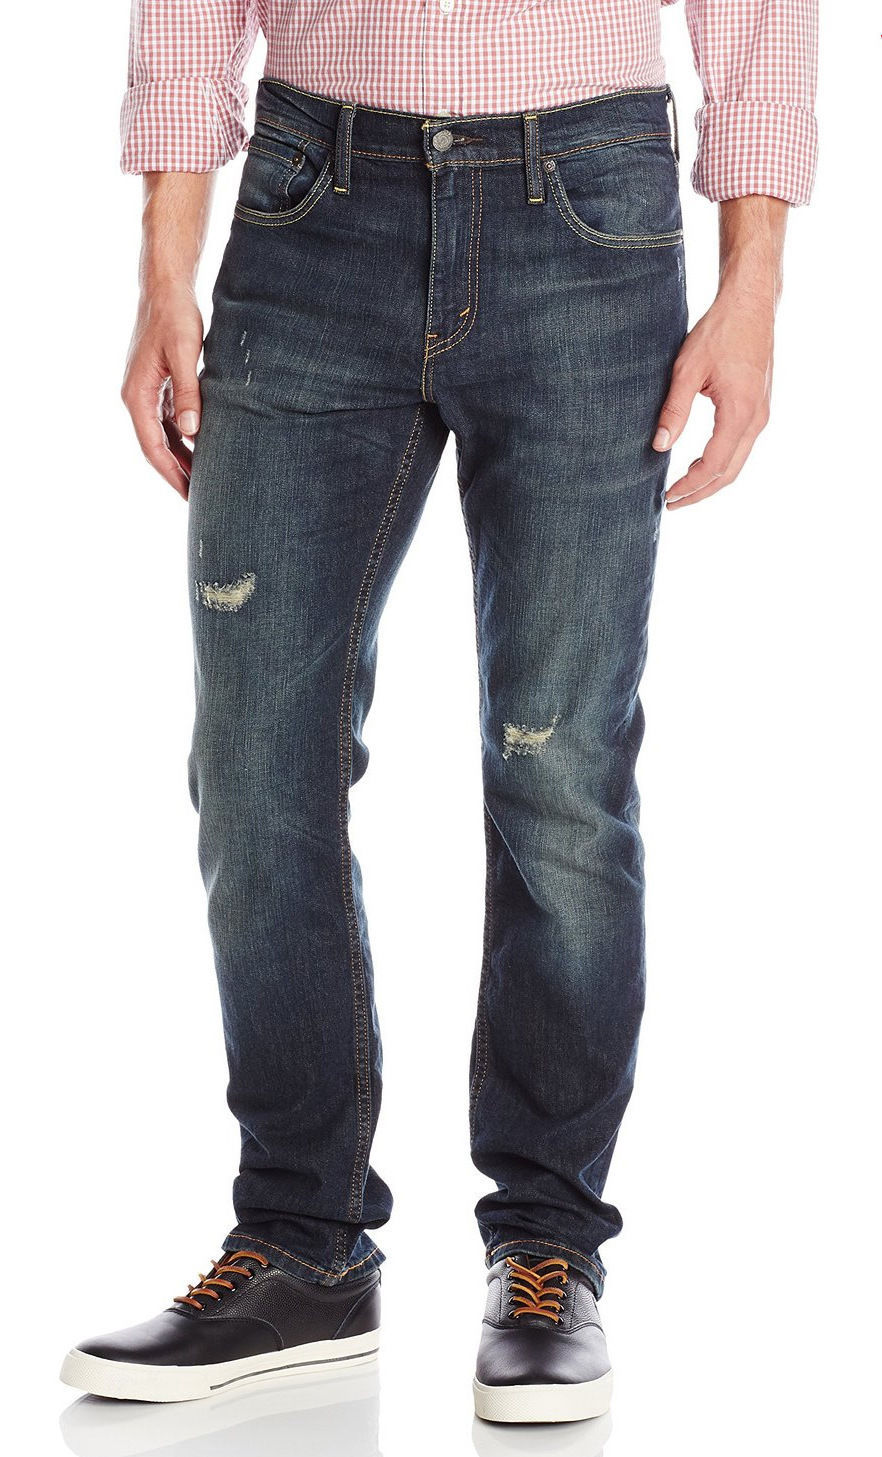 NEW LEVI'S STRAUSS 511 MEN'S SLIM FIT PREMIUM DISTRESSED DENIM JEANS 04511-1317